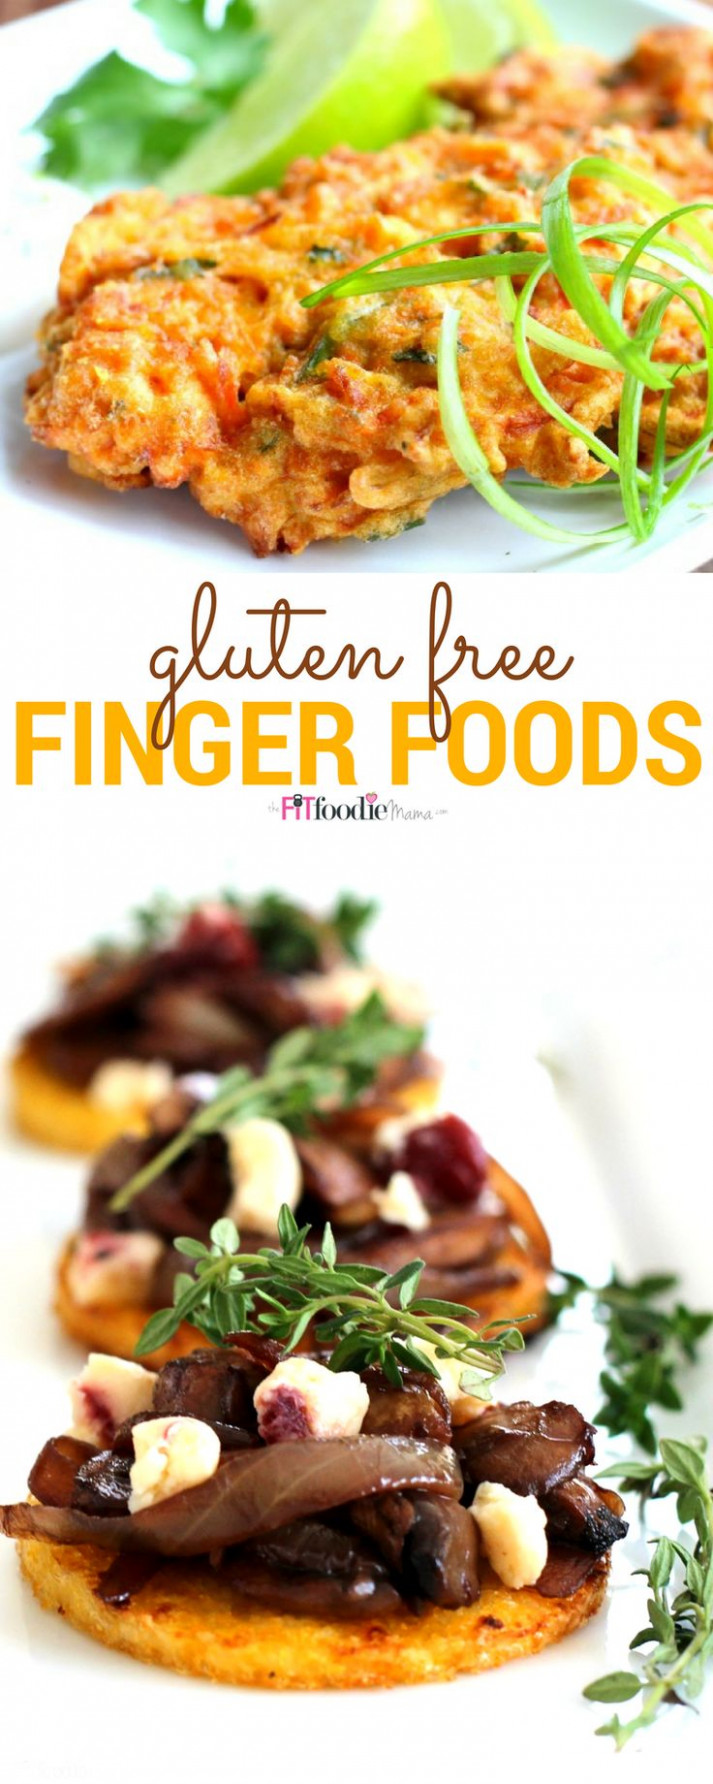 Gluten Free Finger Foods for the Holidays | Meatless ..